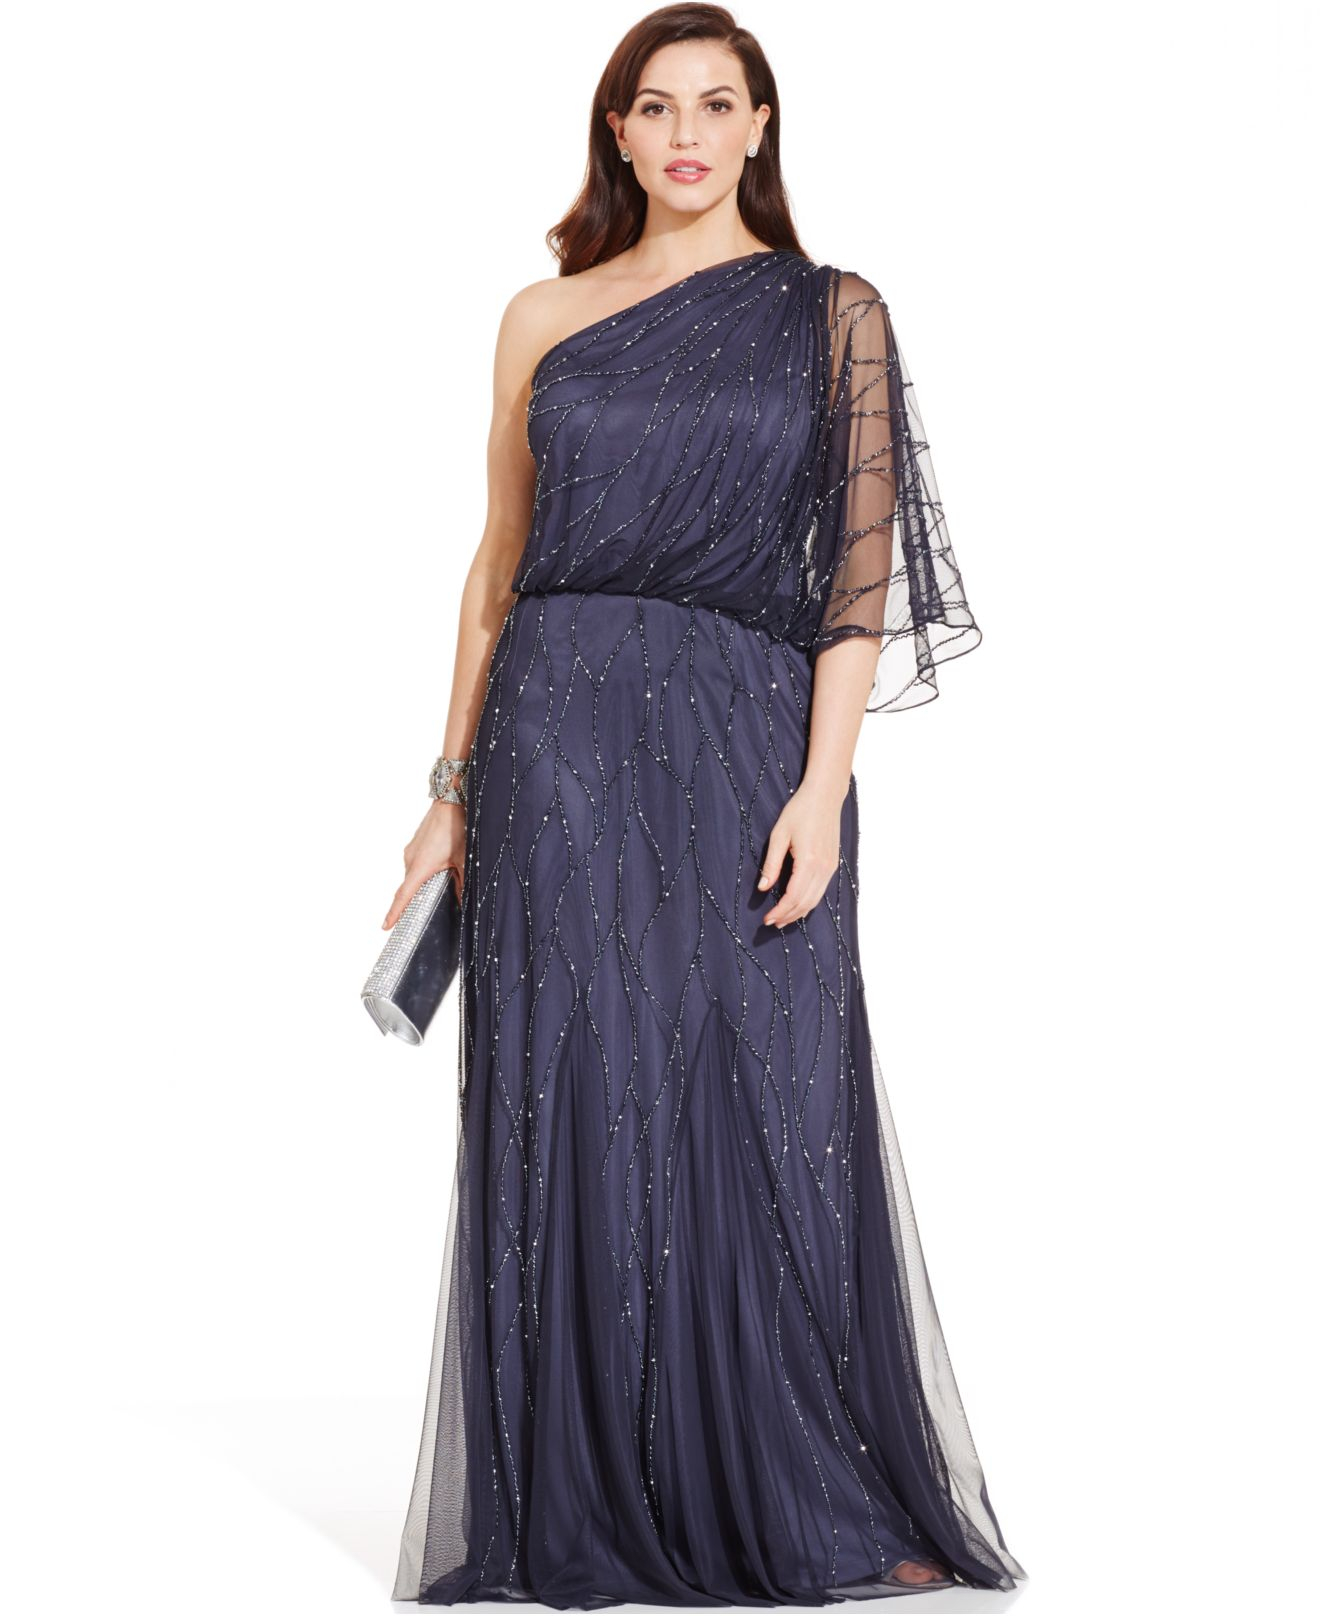 Adrianna Papell Plus Size Formal Dresses – fashion dresses